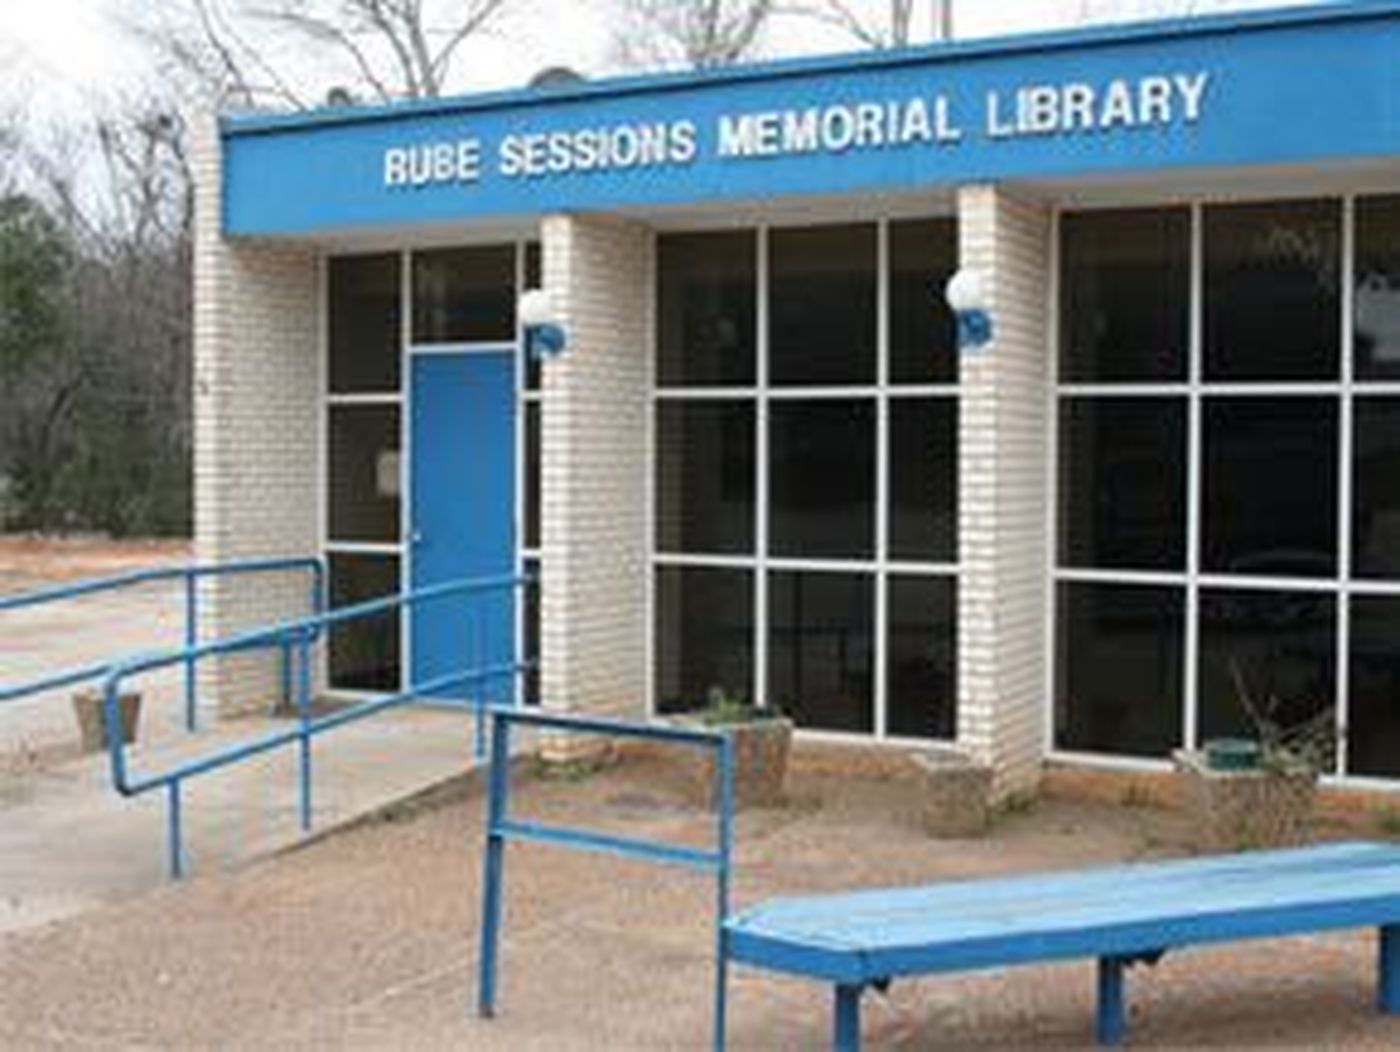 The Rube Session Memorial Library